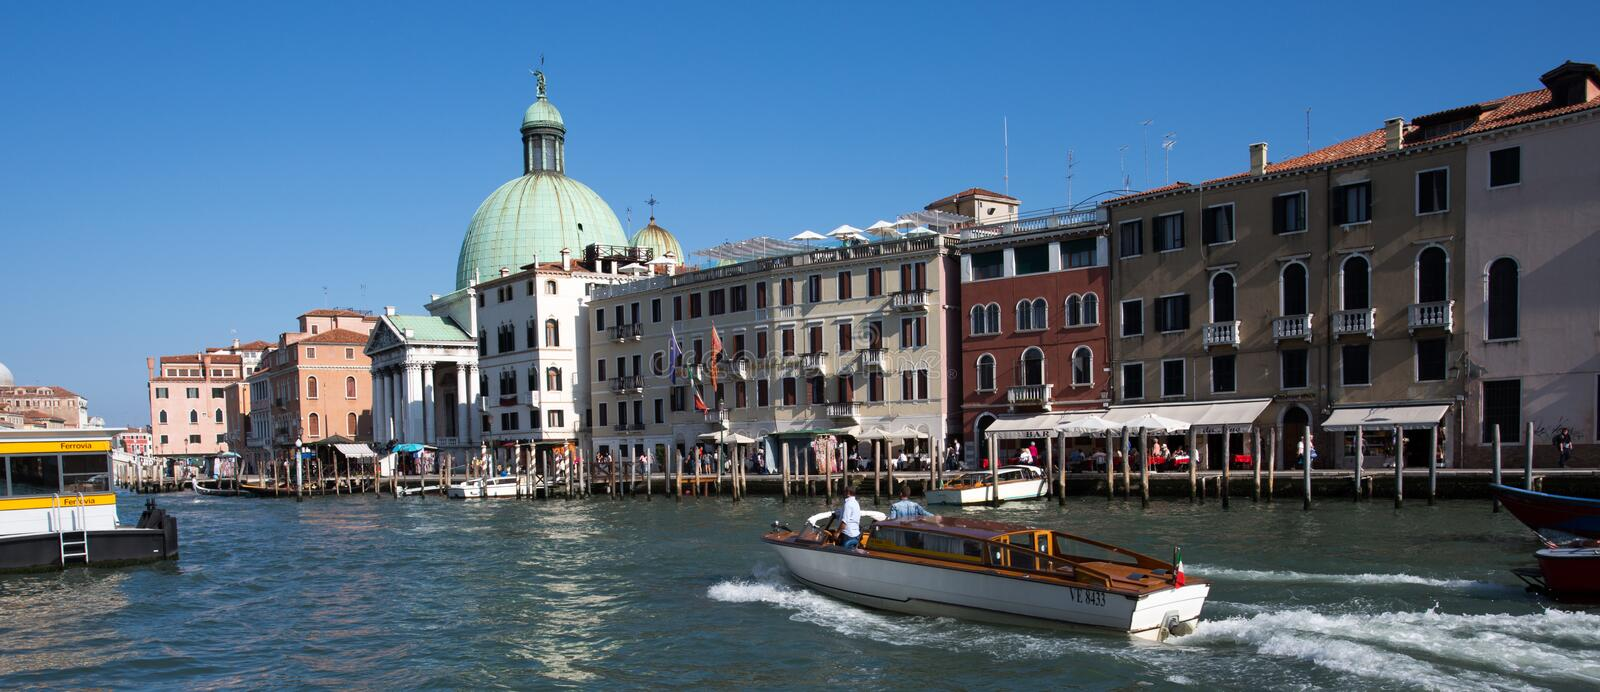 Waterfront Venice royalty free stock photography